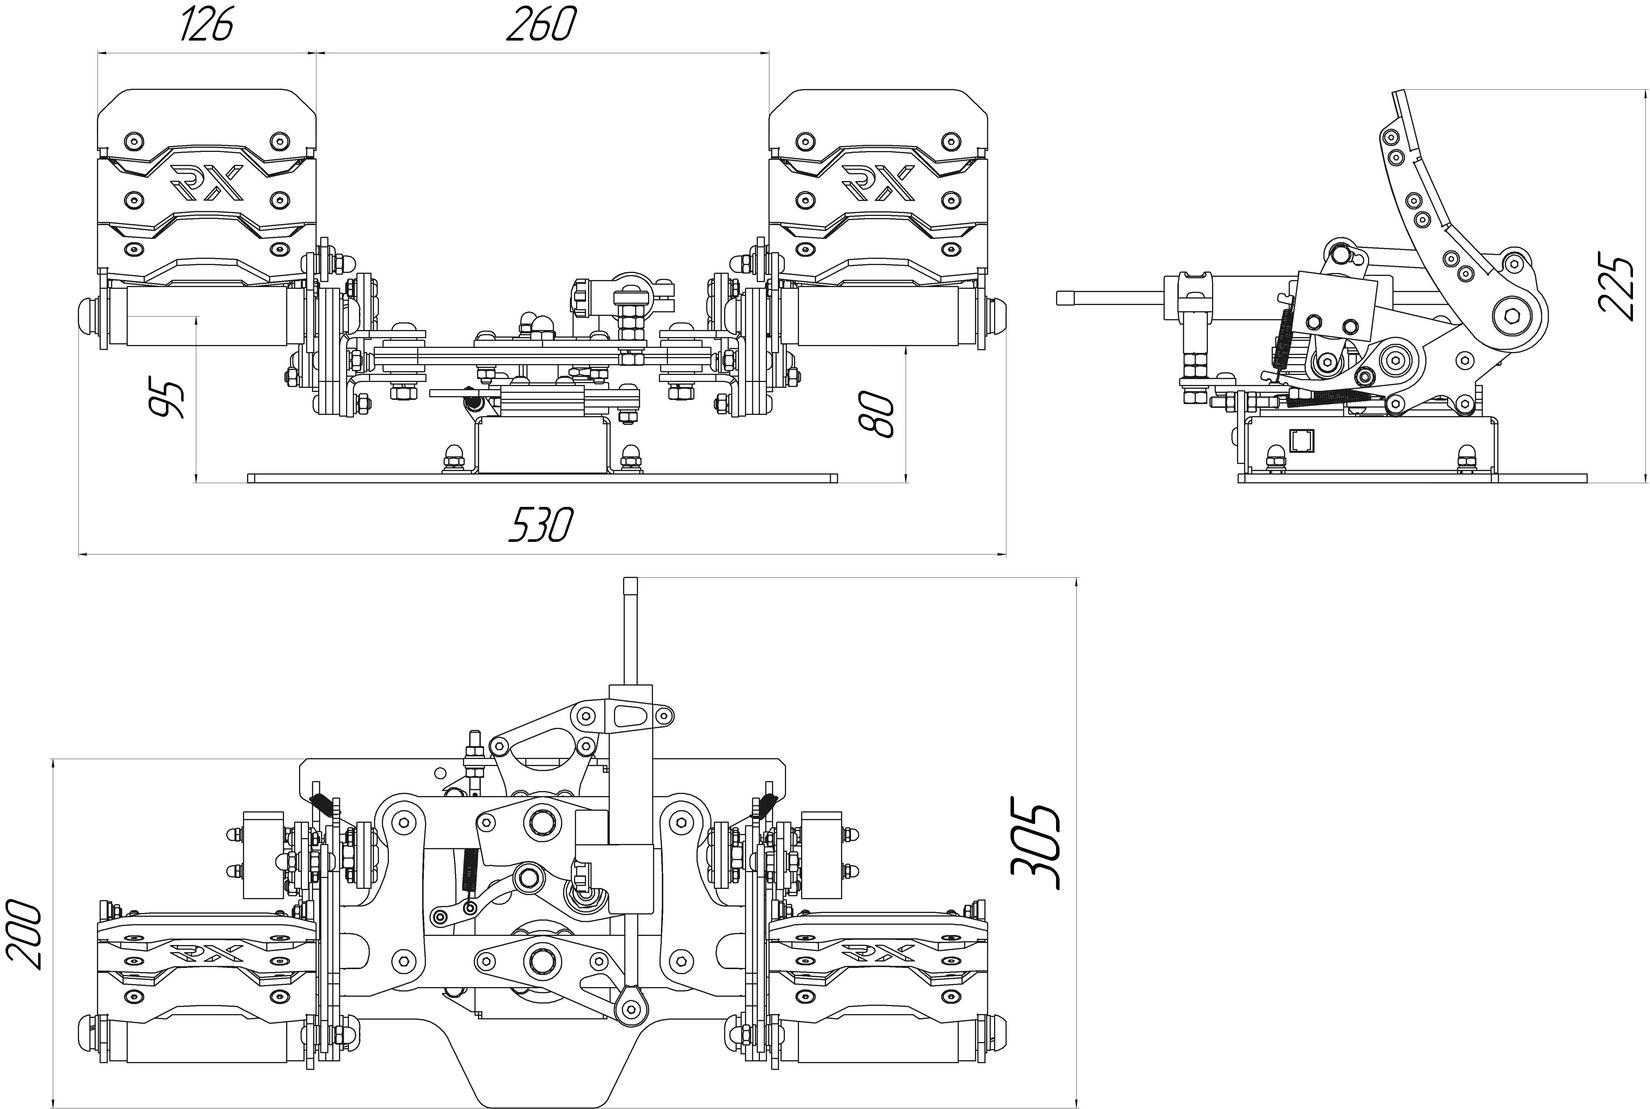 Slaw Device RX Viper pedal design diagram. Dimensions are in millimeters.